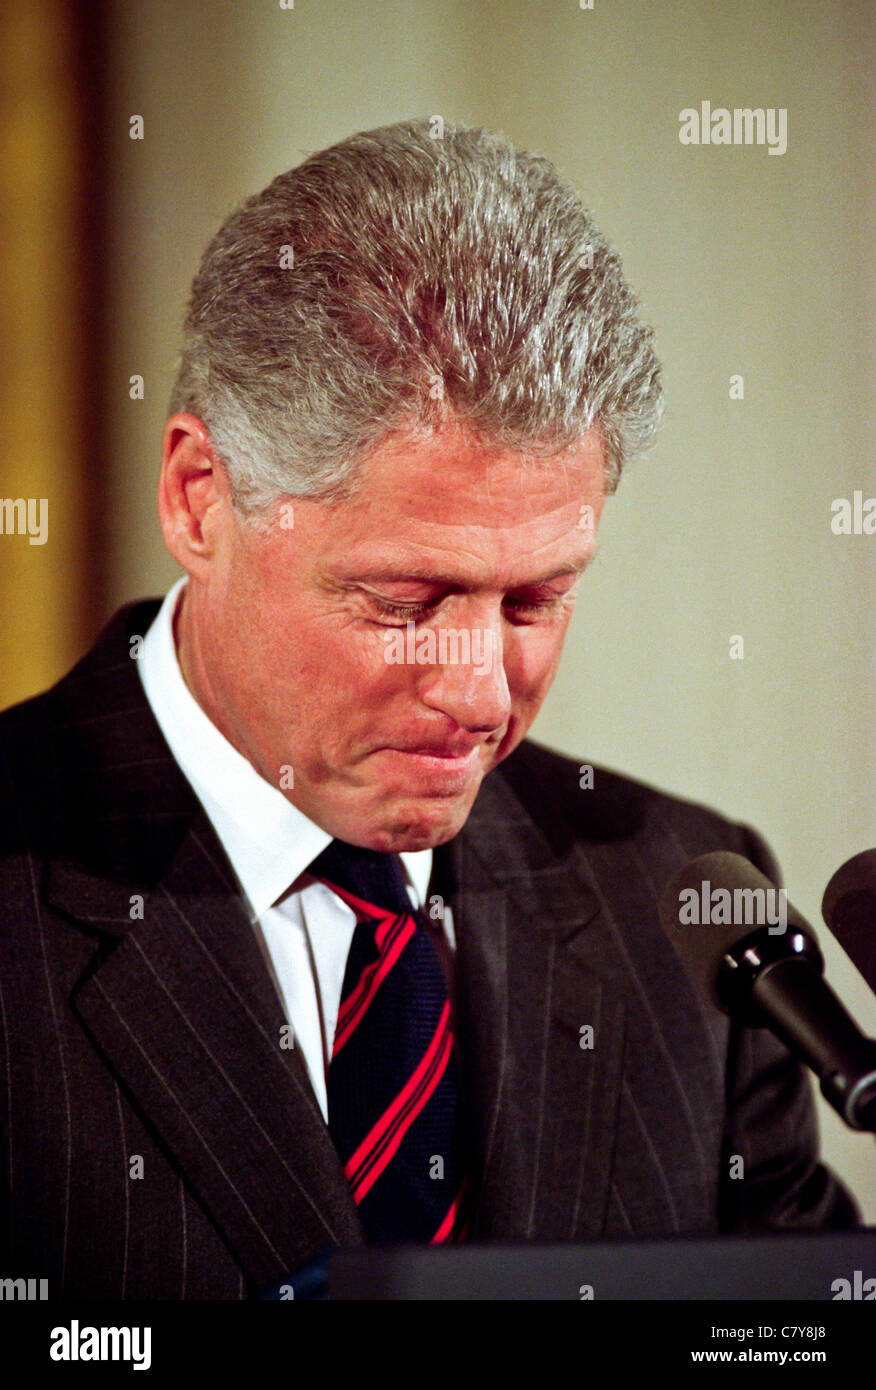 President Bill Clinton pauses during an event in the East Room of the White House January 13, 1999 - Stock Image